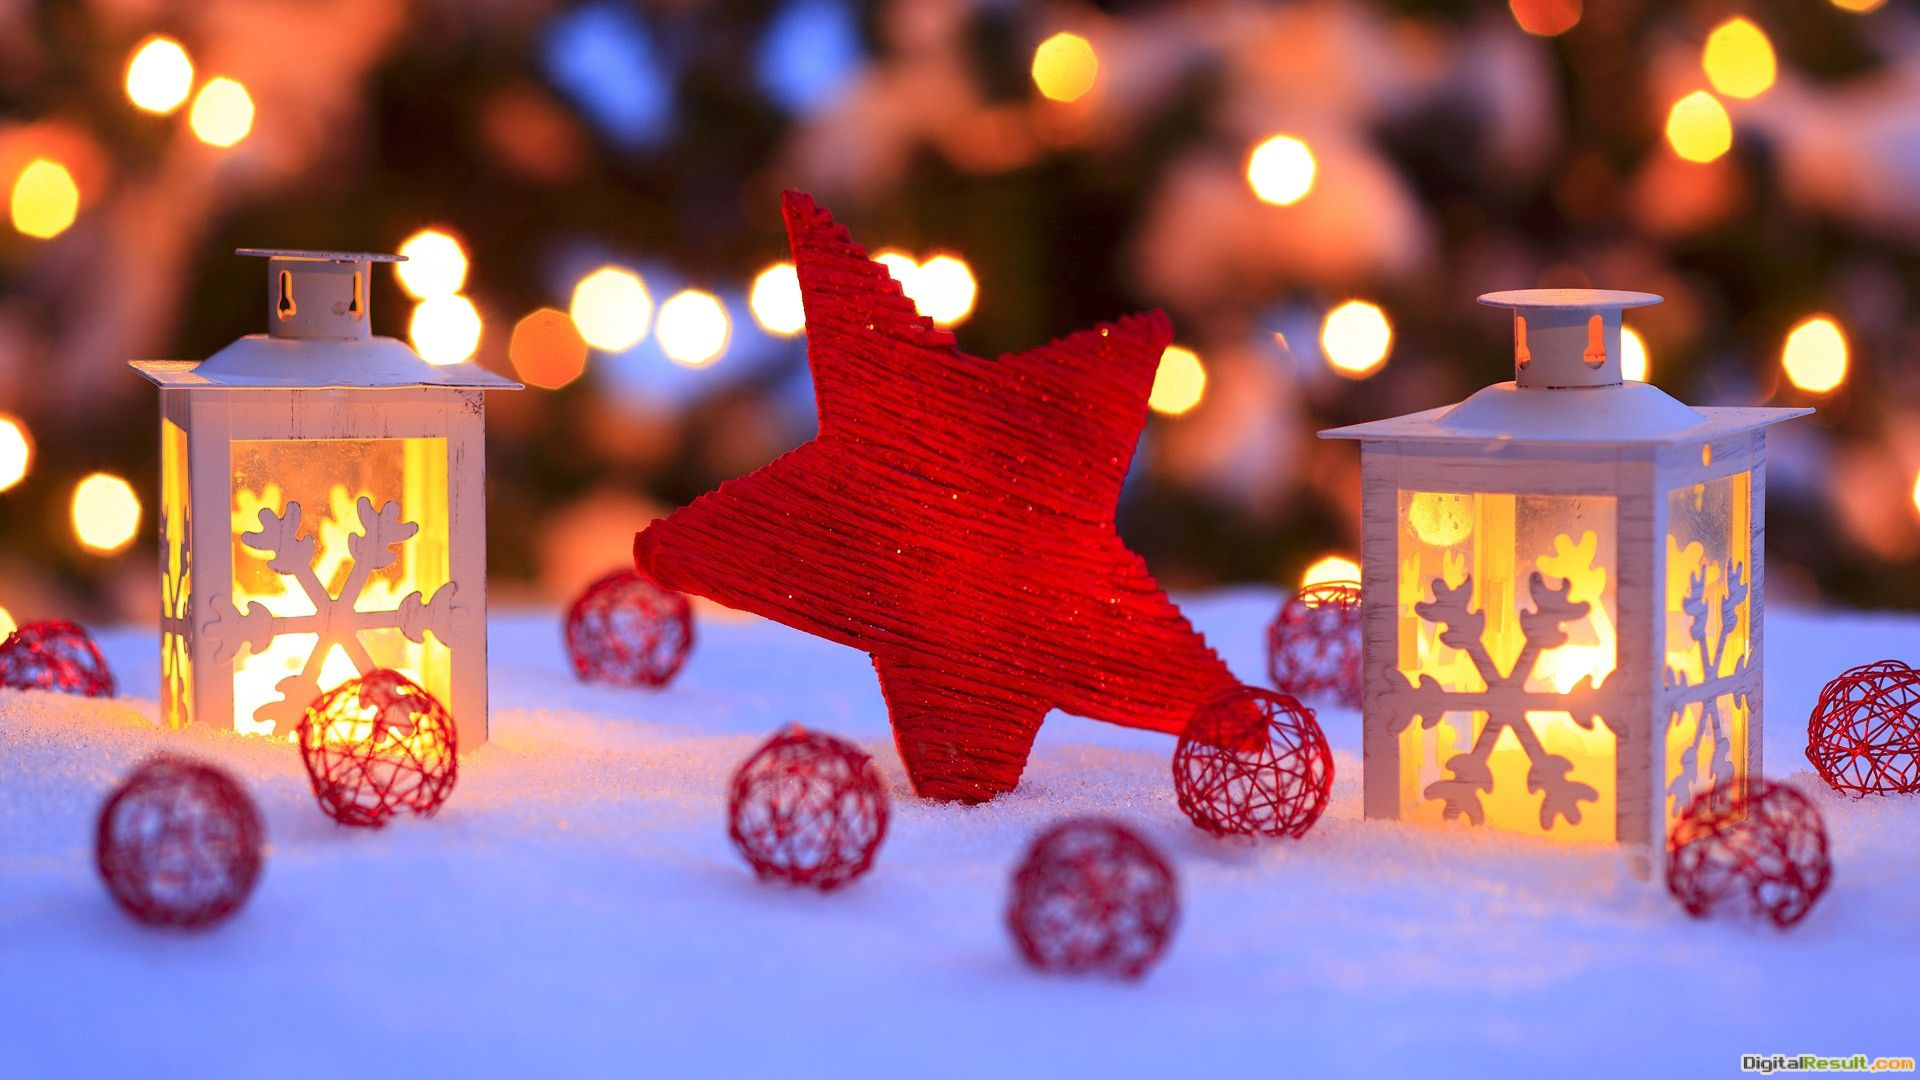 HD Christmas Backgrounds | Wallpapers9 270